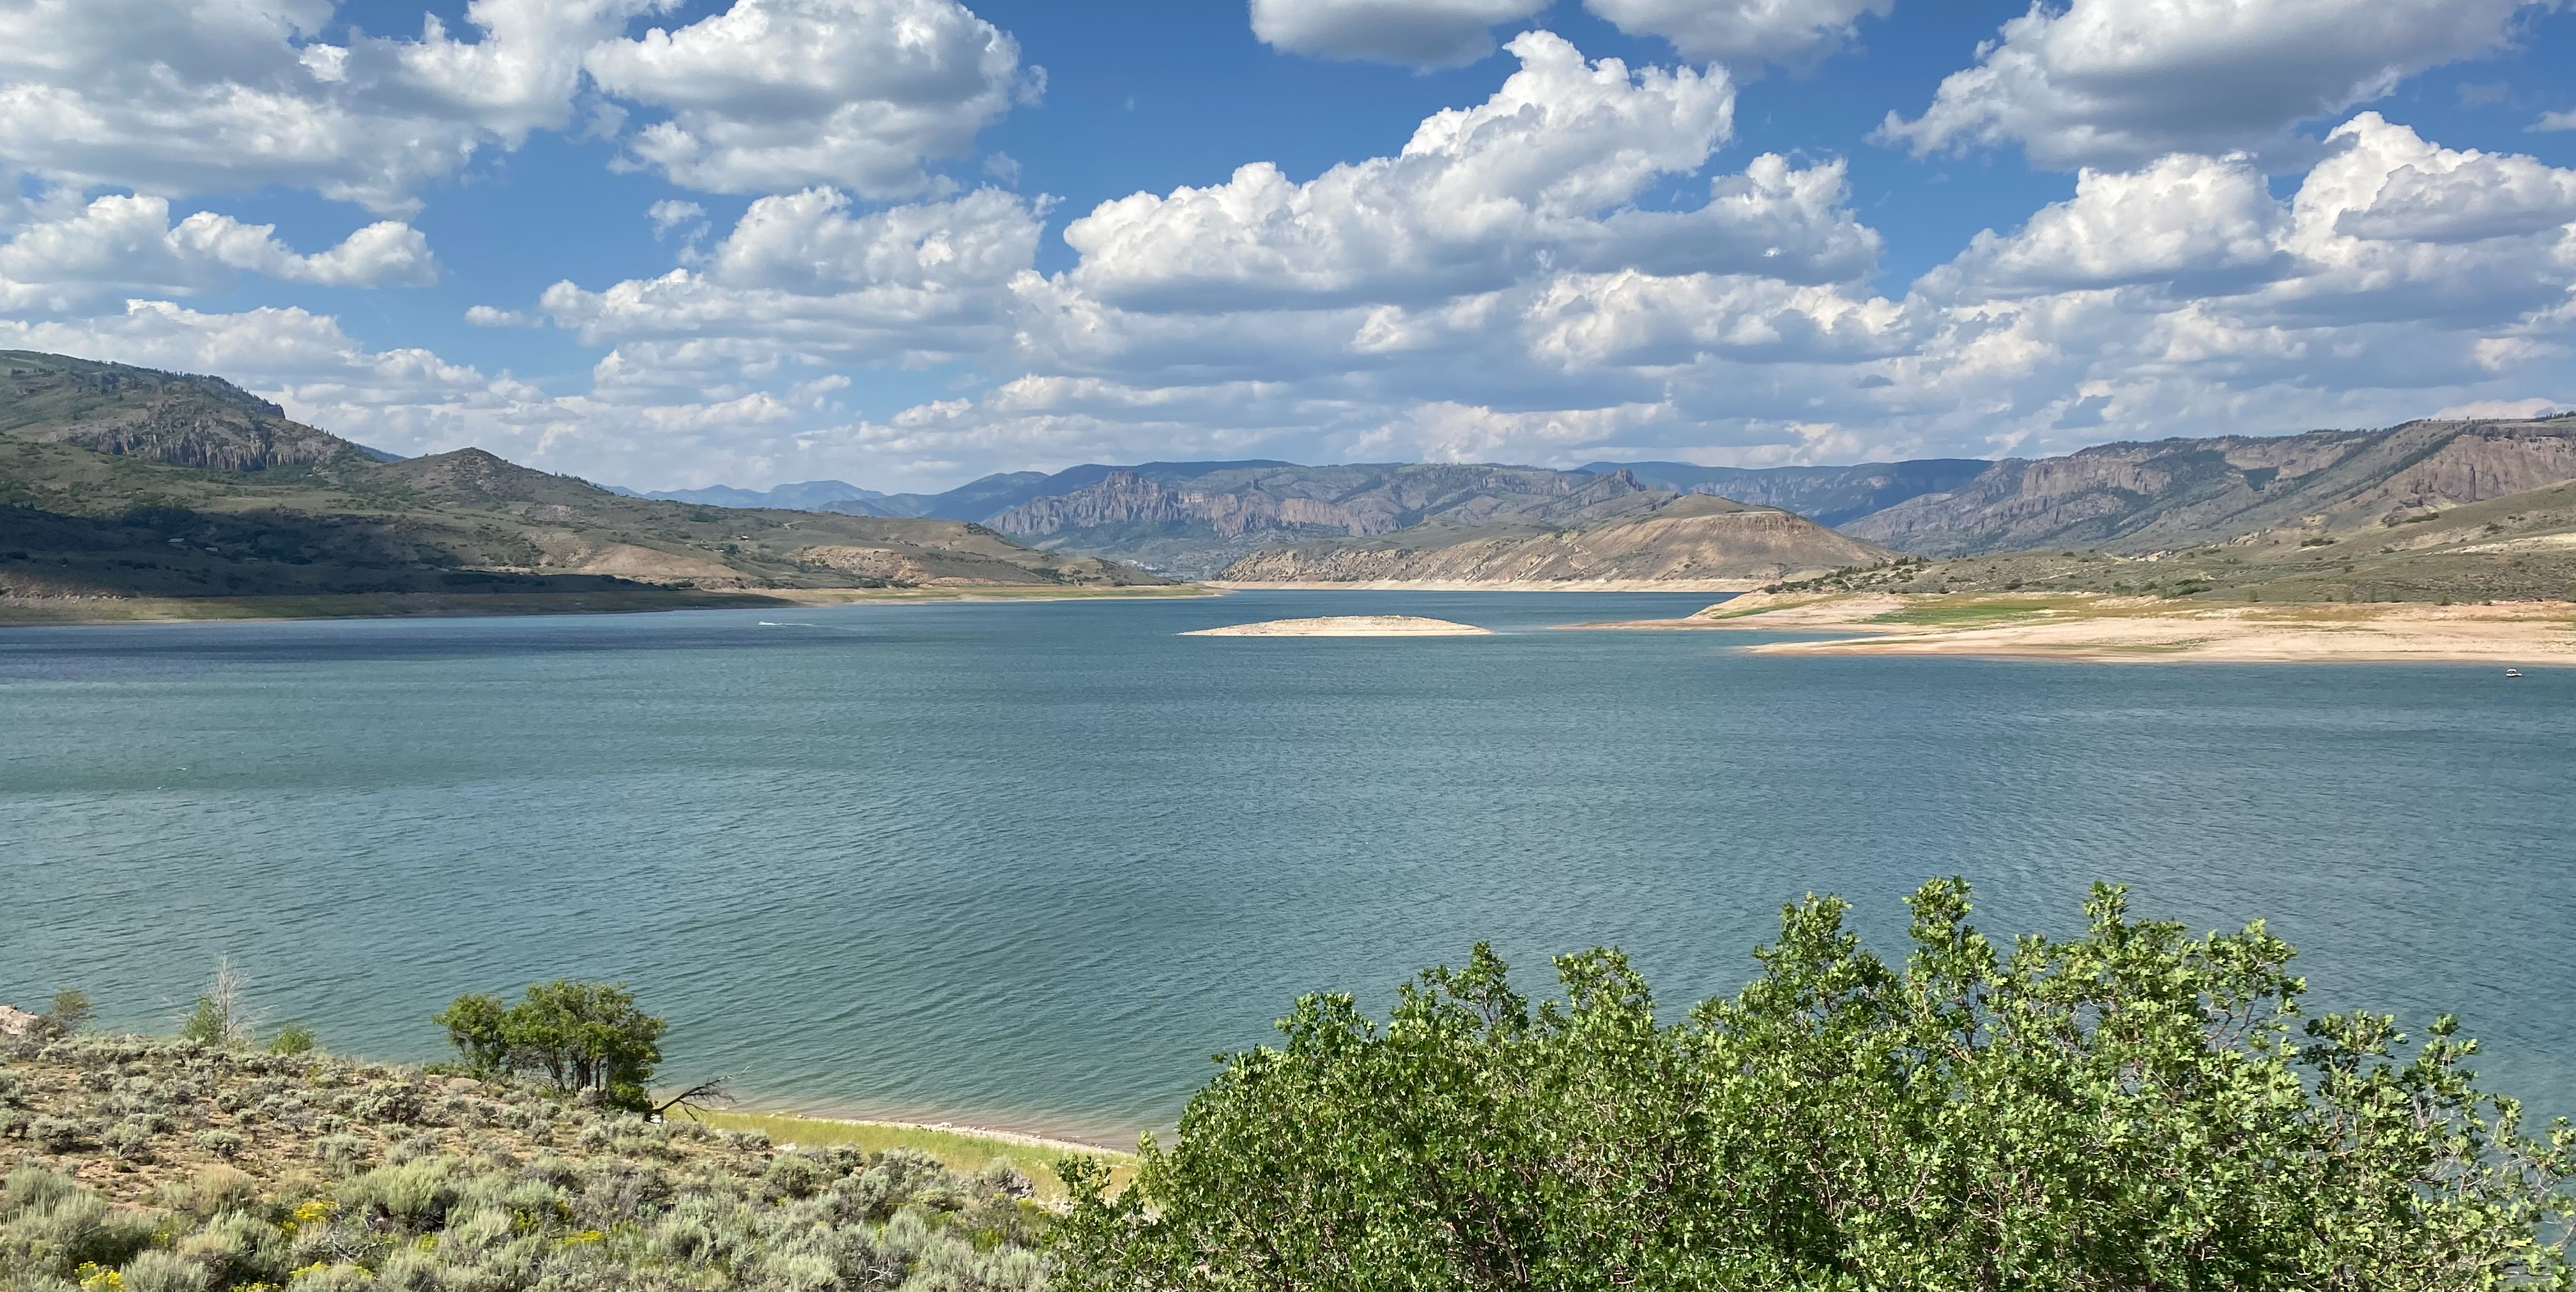 A sunny landscape with a large blue lake, green vegetation, mountains, and a blue sky with fluffy white clouds